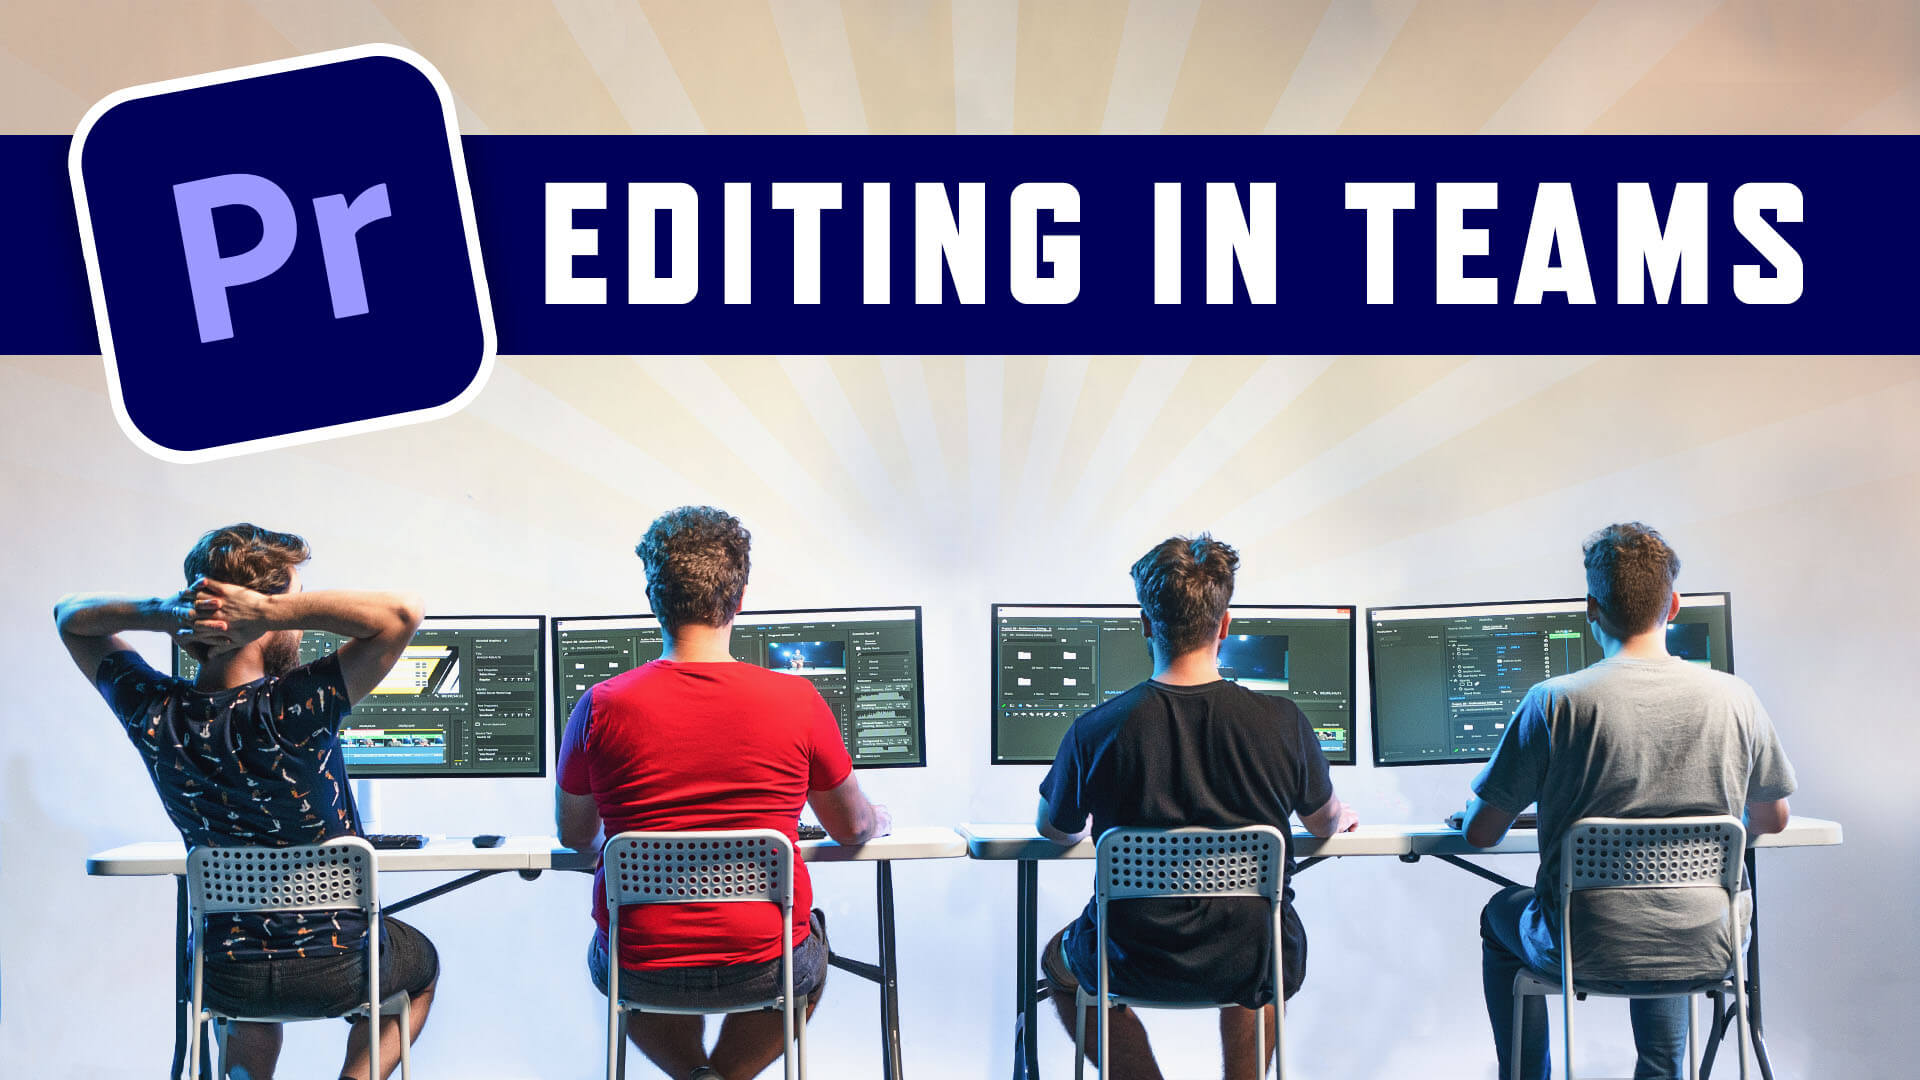 Editing in Teams with Adobe Premiere Pro